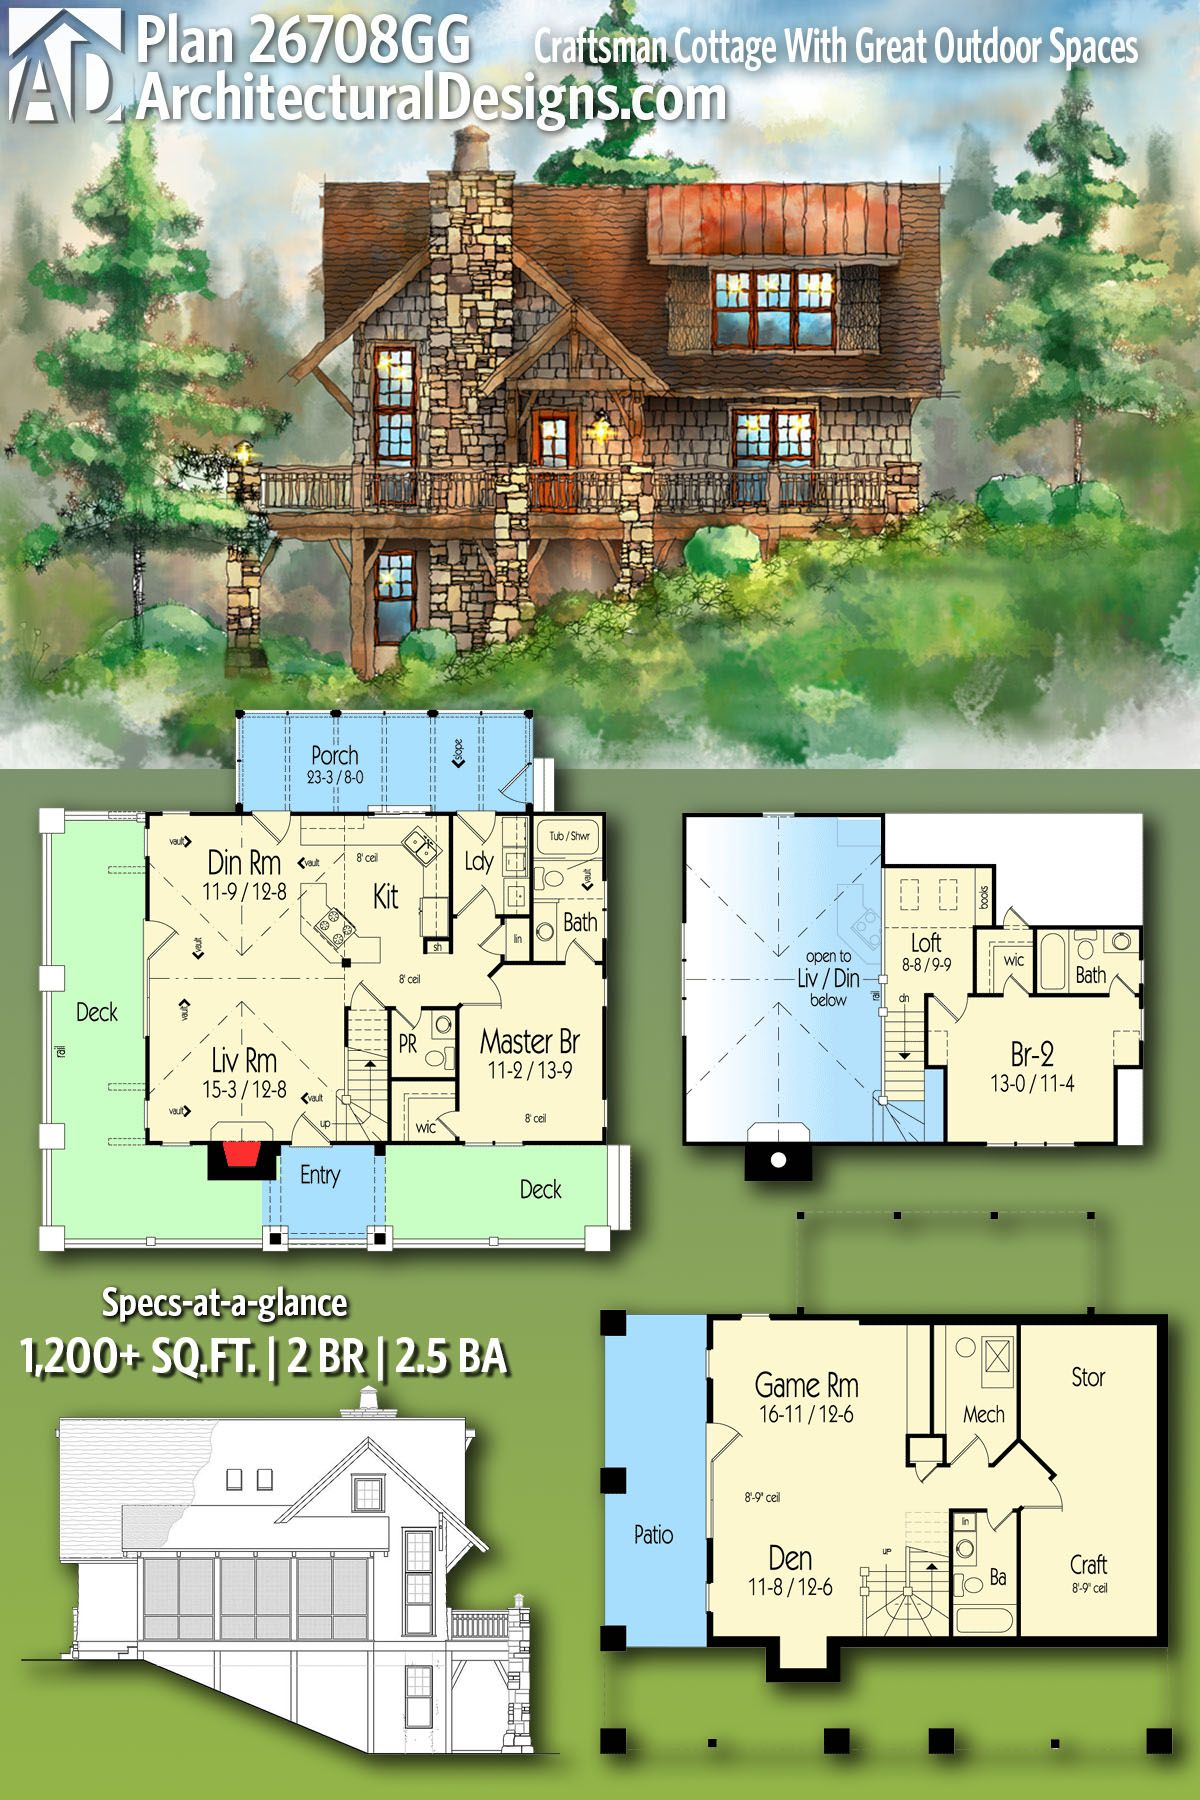 Plan 26708gg Craftsman Cottage With Great Outdoor Spaces Rustic House Plans Architectural Design House Plans Cabin Floor Plans